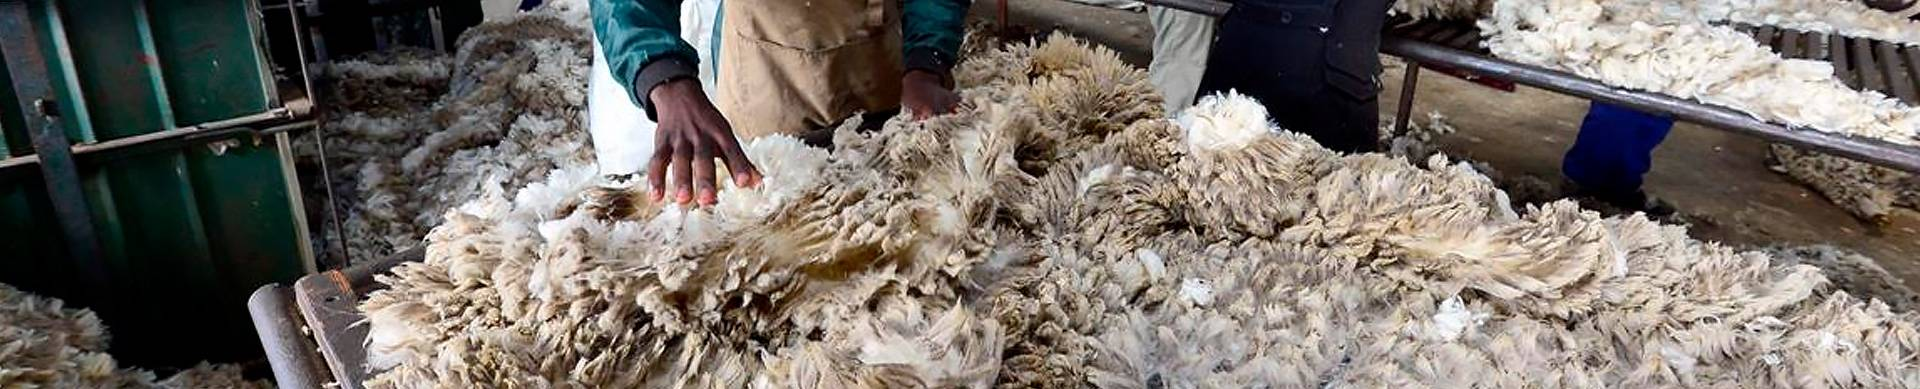 Wool-farmer-information-south-africa